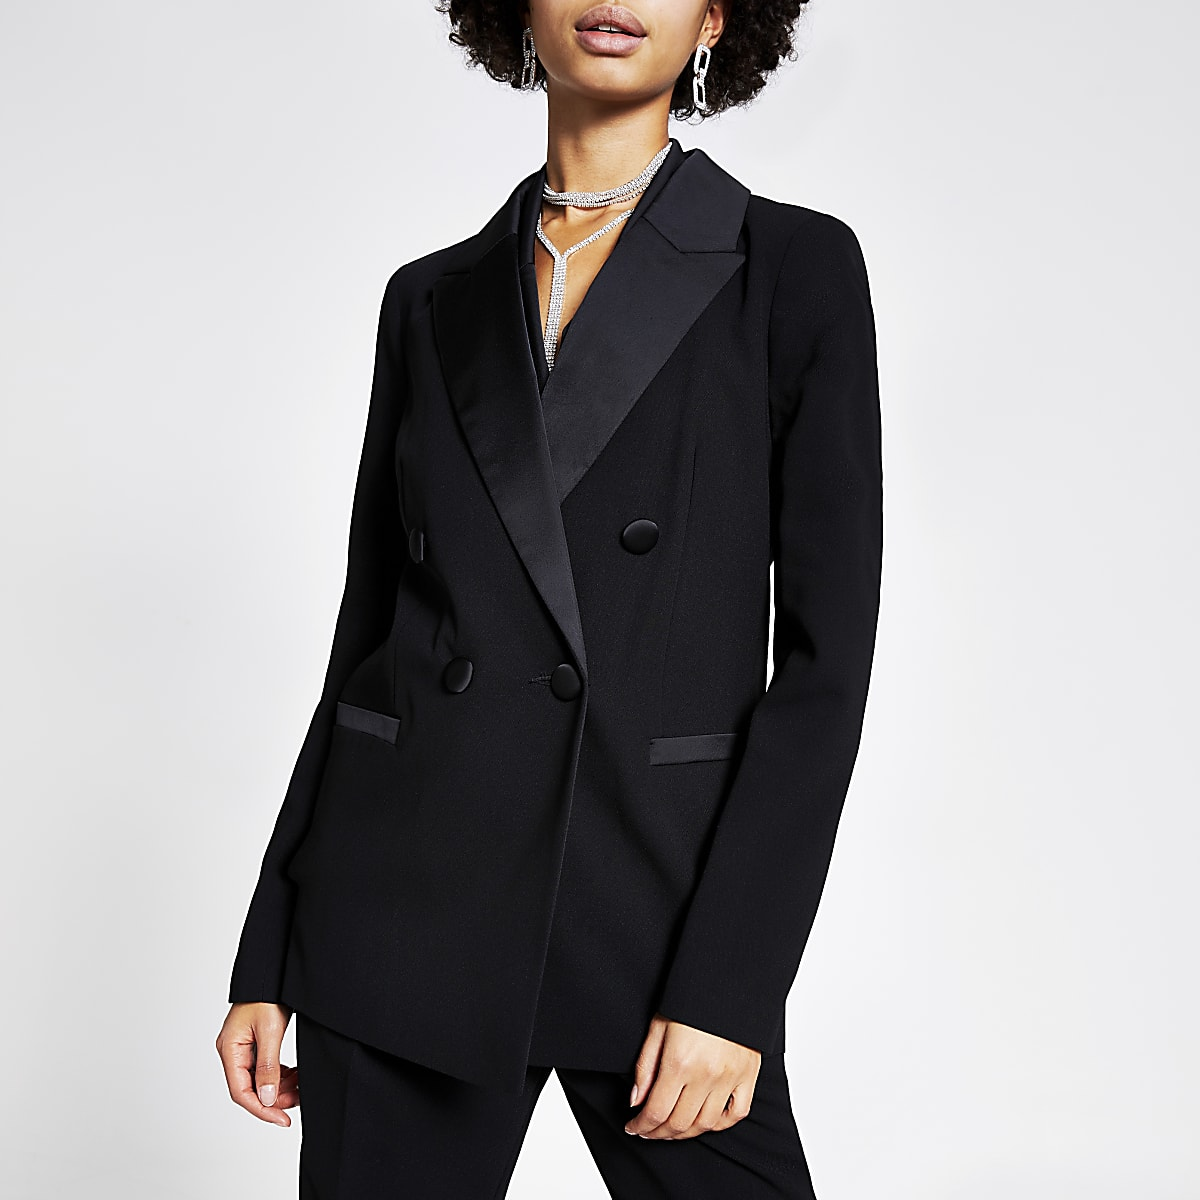 Black double breasted satin lapel blazer